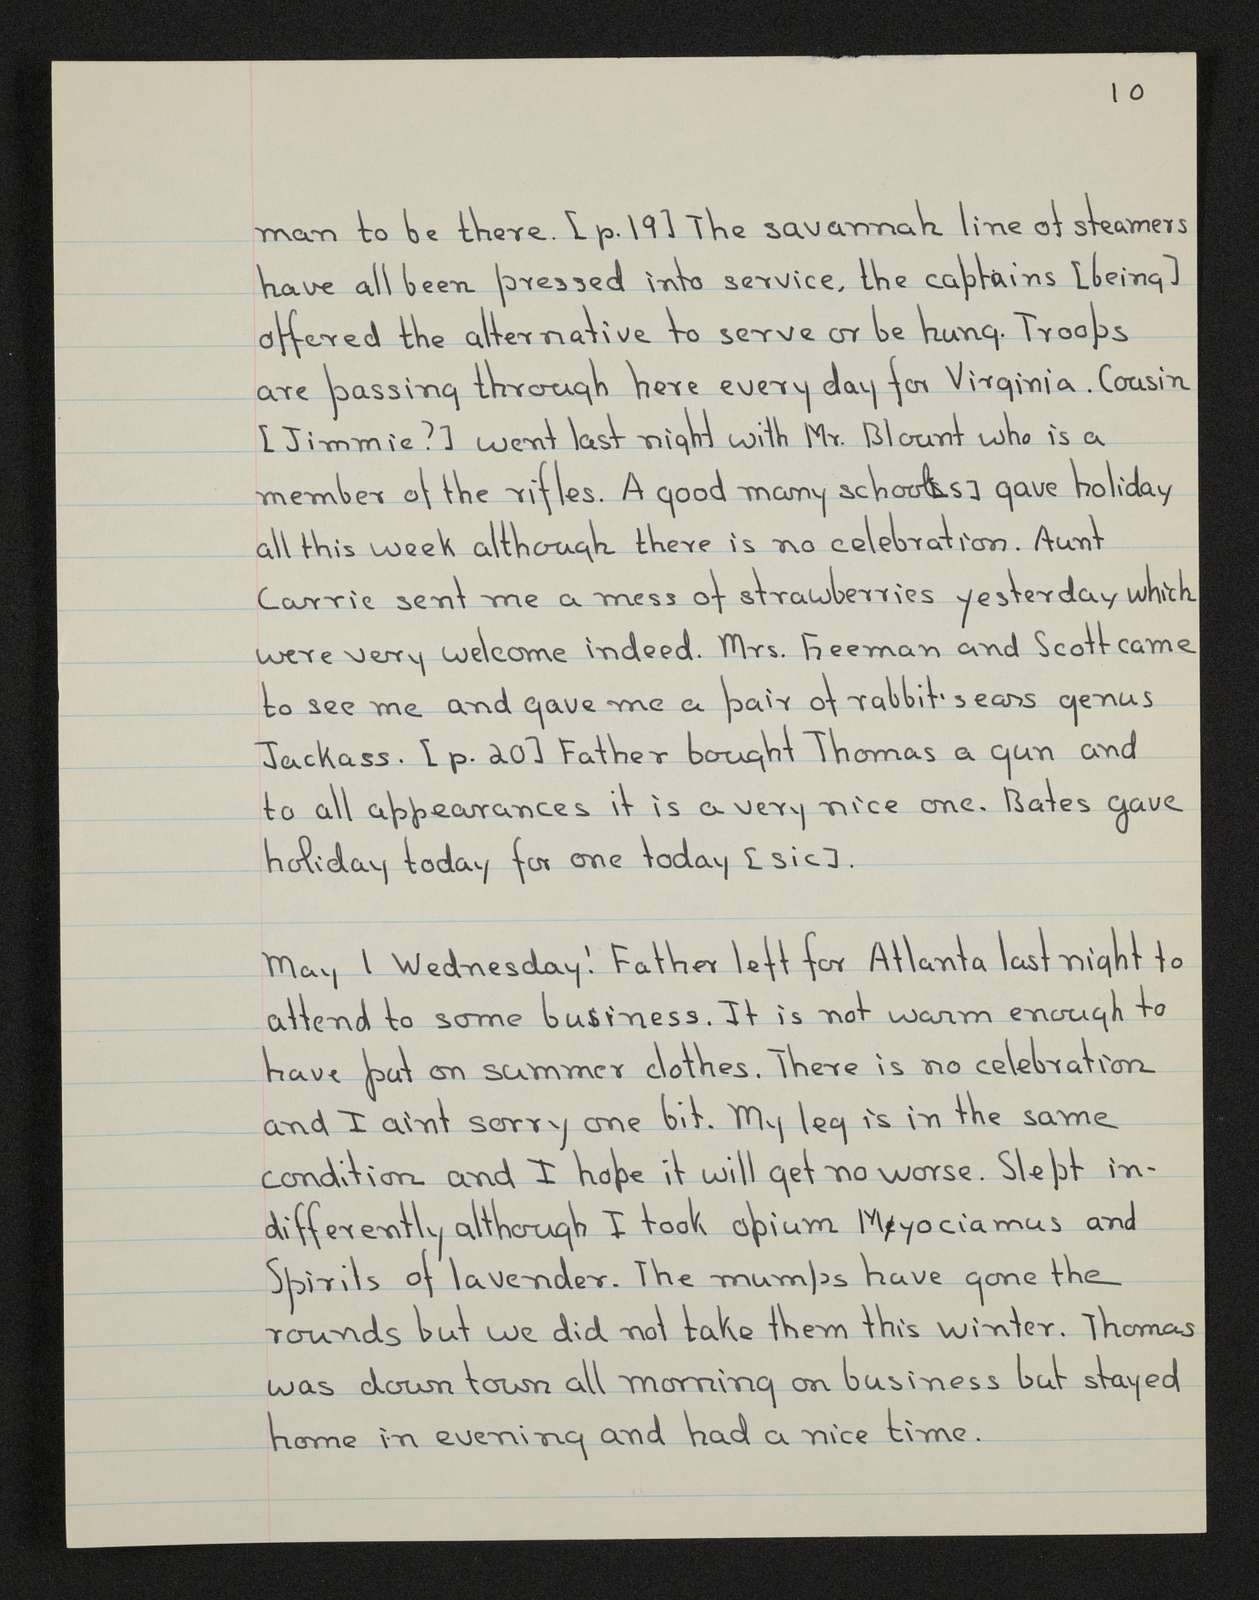 Lewis H. Machen Family Papers: Diaries and Diary Transcriptions, 1860-1865; Diaries; Gresham, LeRoy Wiley; Transcriptions; 1860-1861